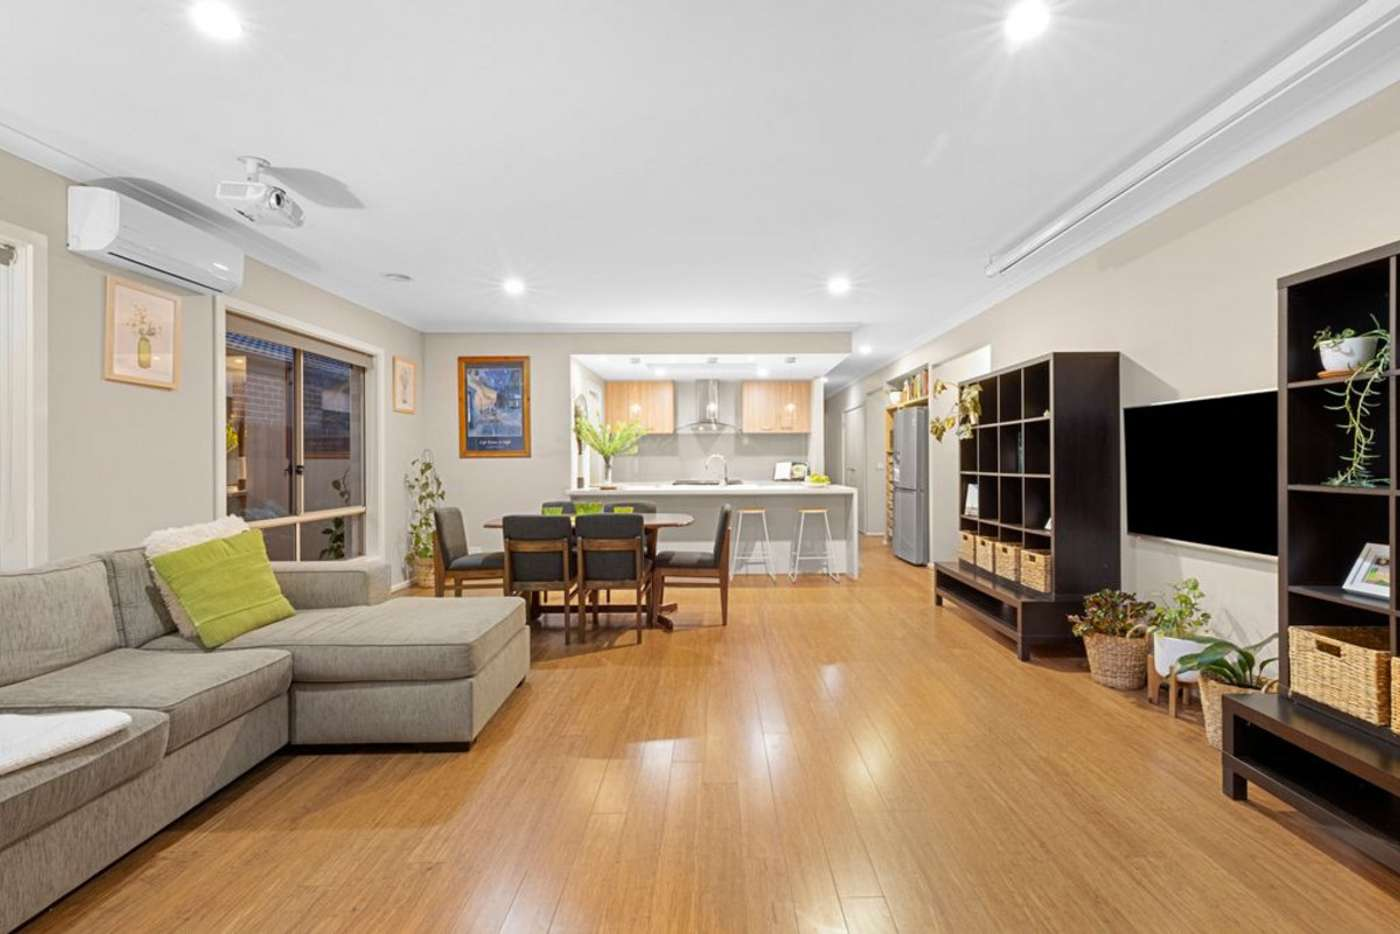 Sixth view of Homely house listing, 16 Drift Lane, Armstrong Creek VIC 3217